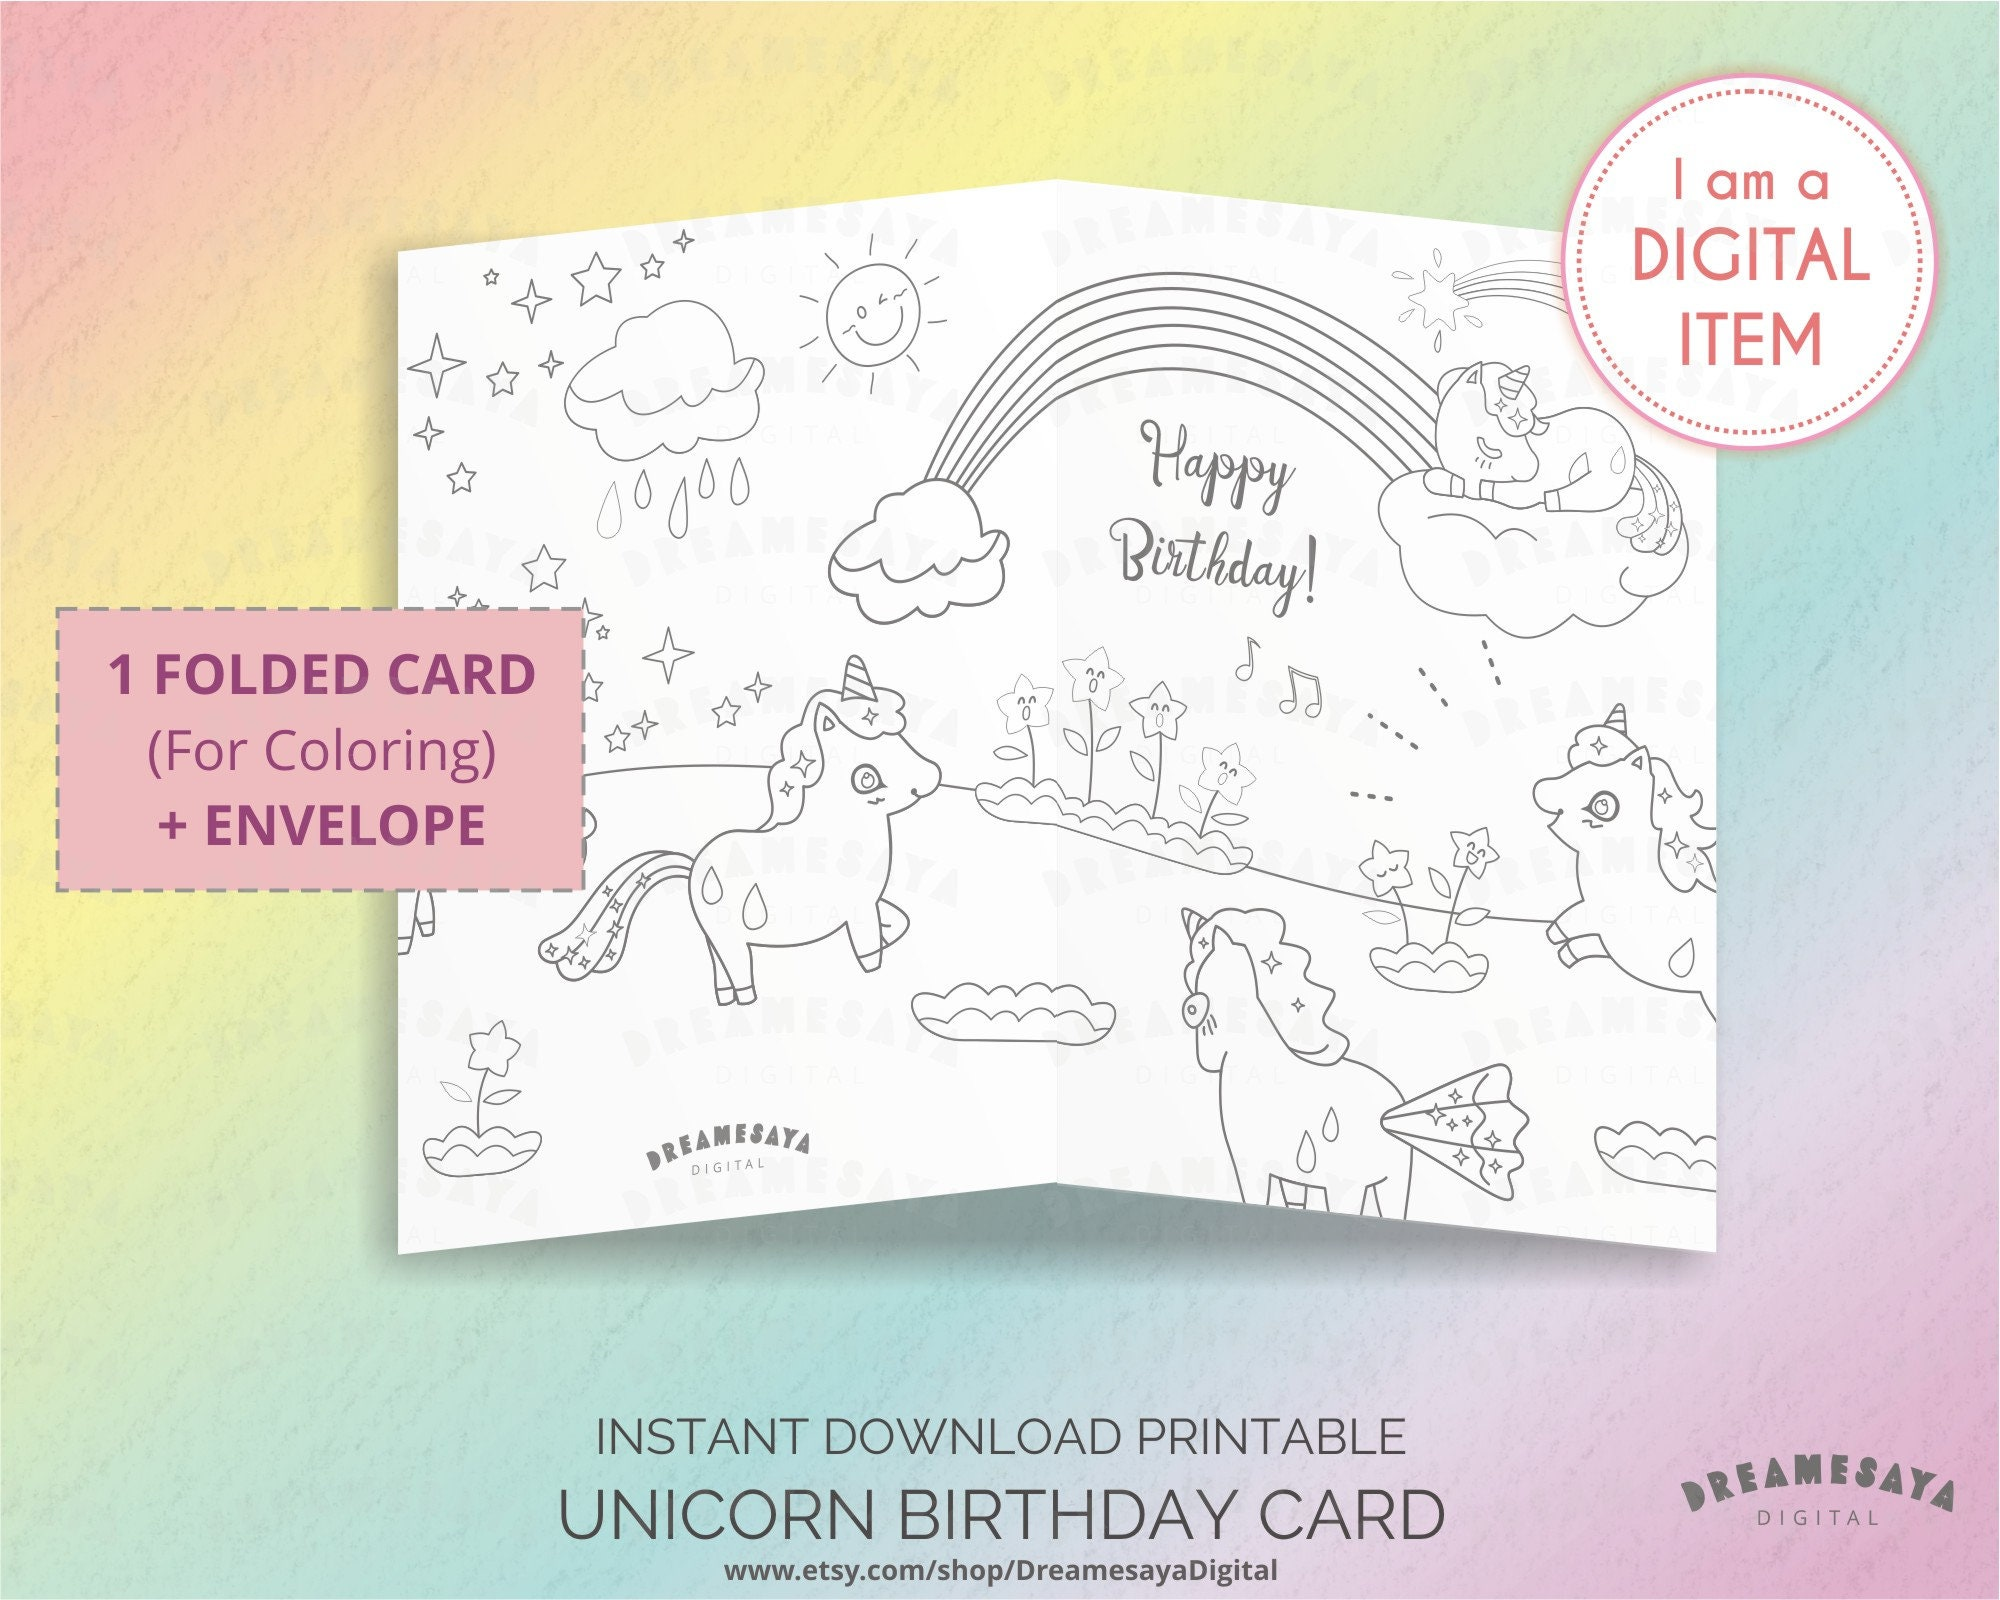 Unicorn Coloring Card Download Black And White Happy Birthday Card Illustrated With Magical Unicorns For Coloring